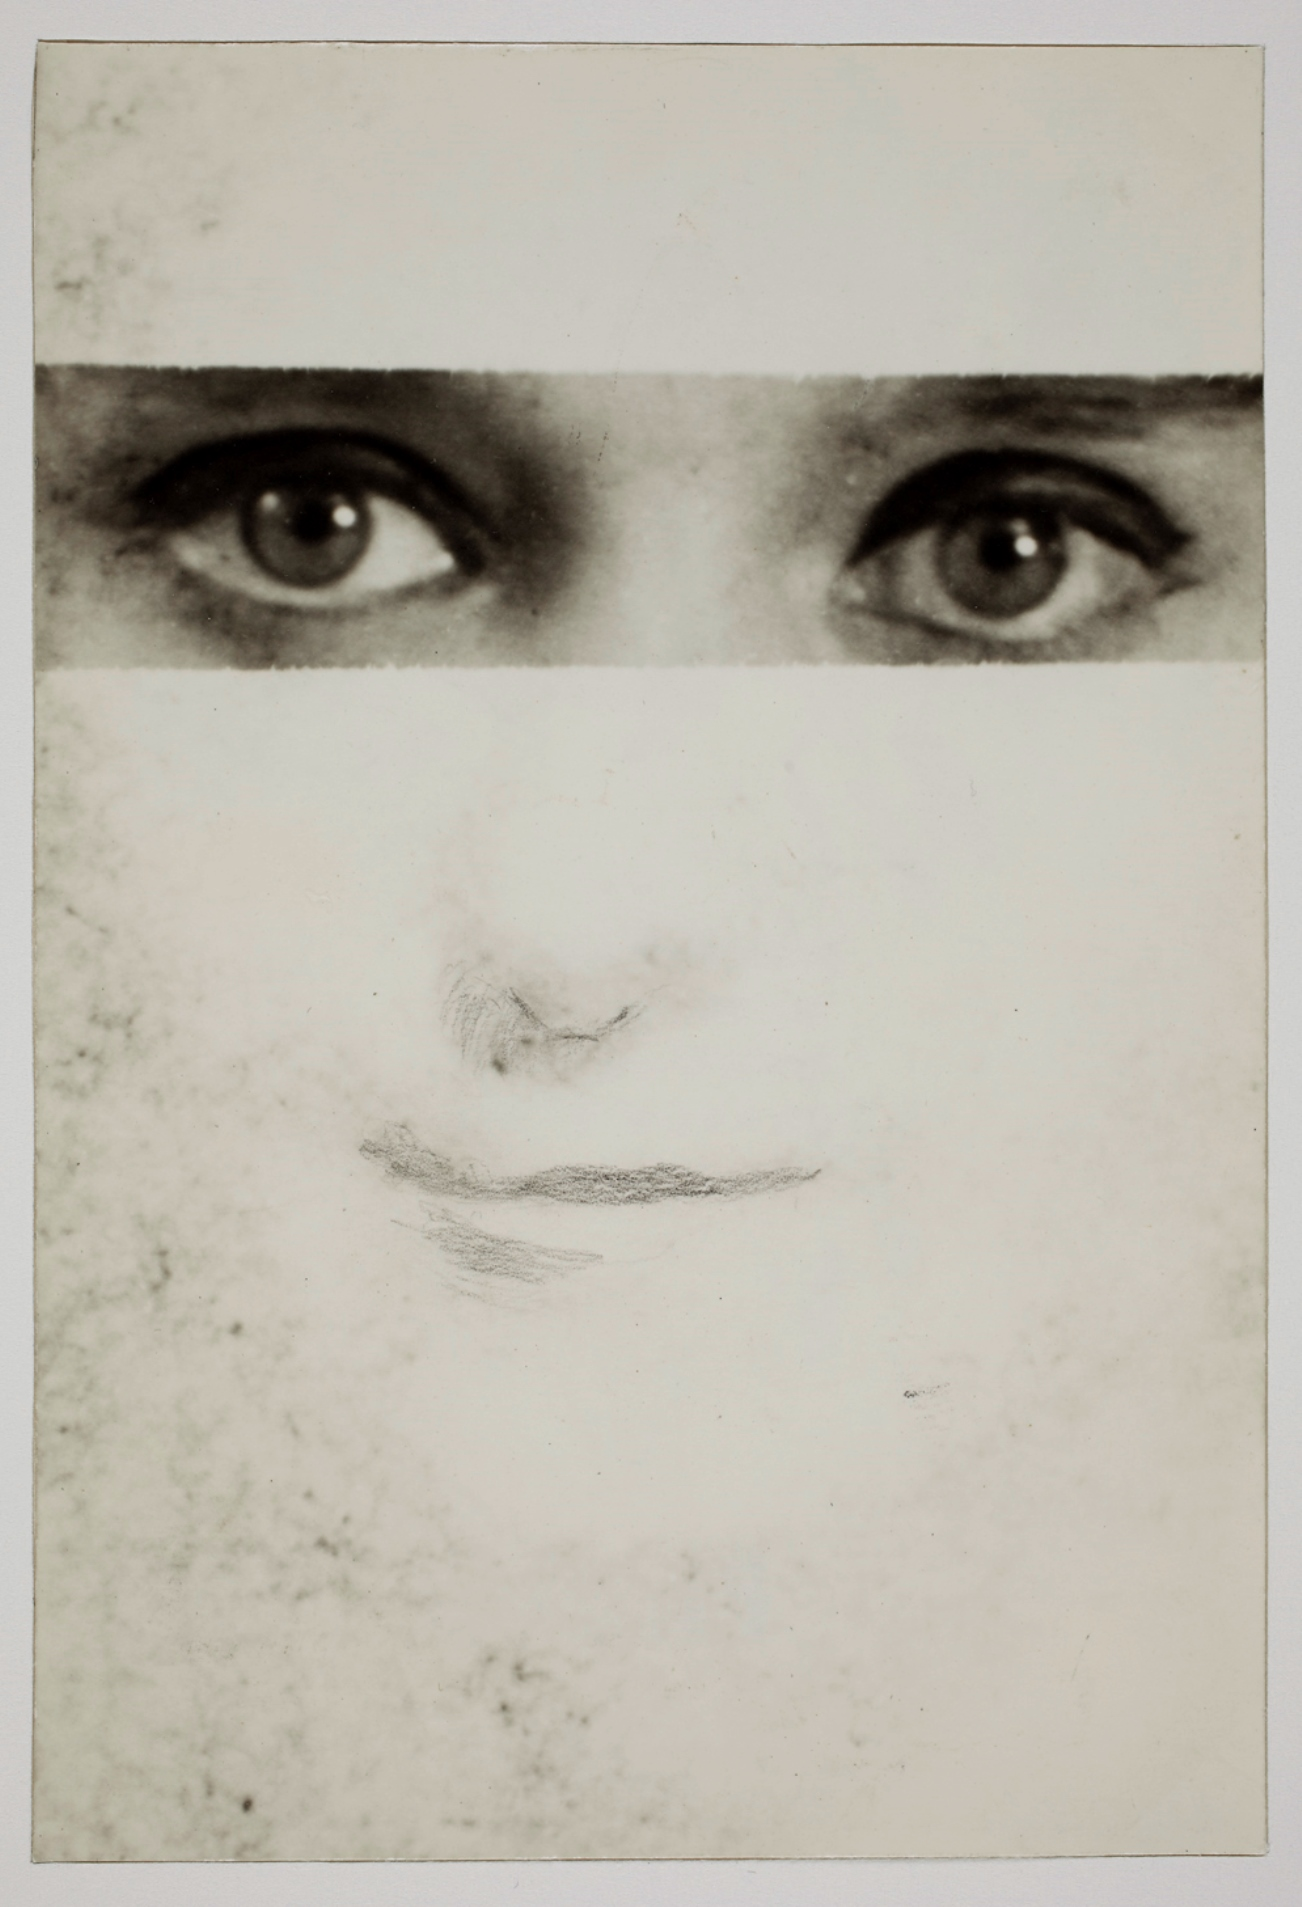 Man Ray. Eyes 1935. Via argo.net